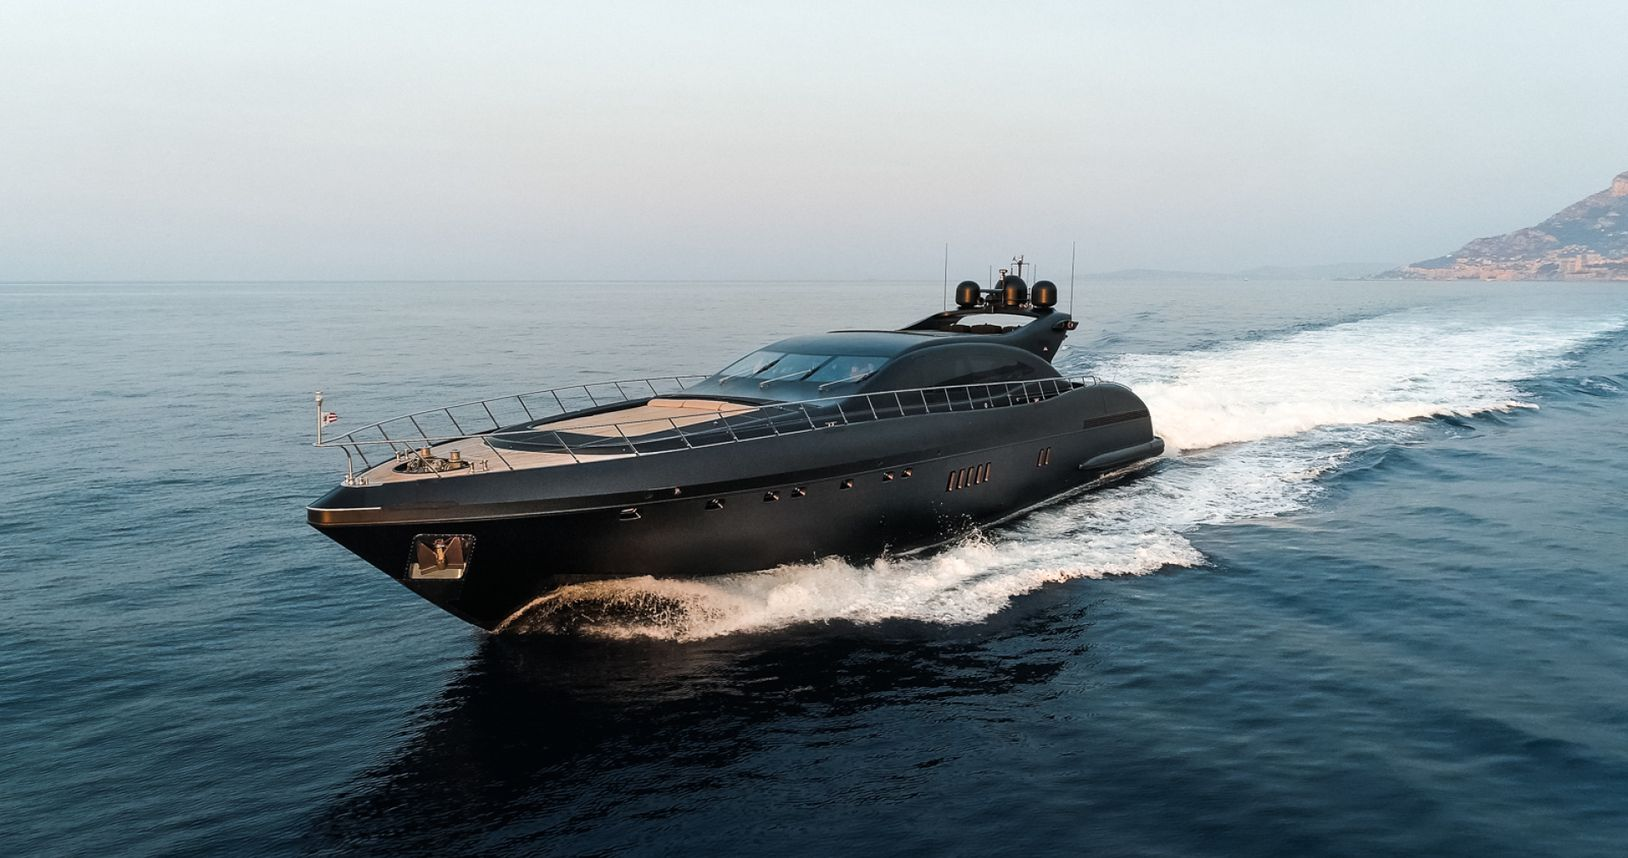 Charter yacht NEOPRENE moving at speed